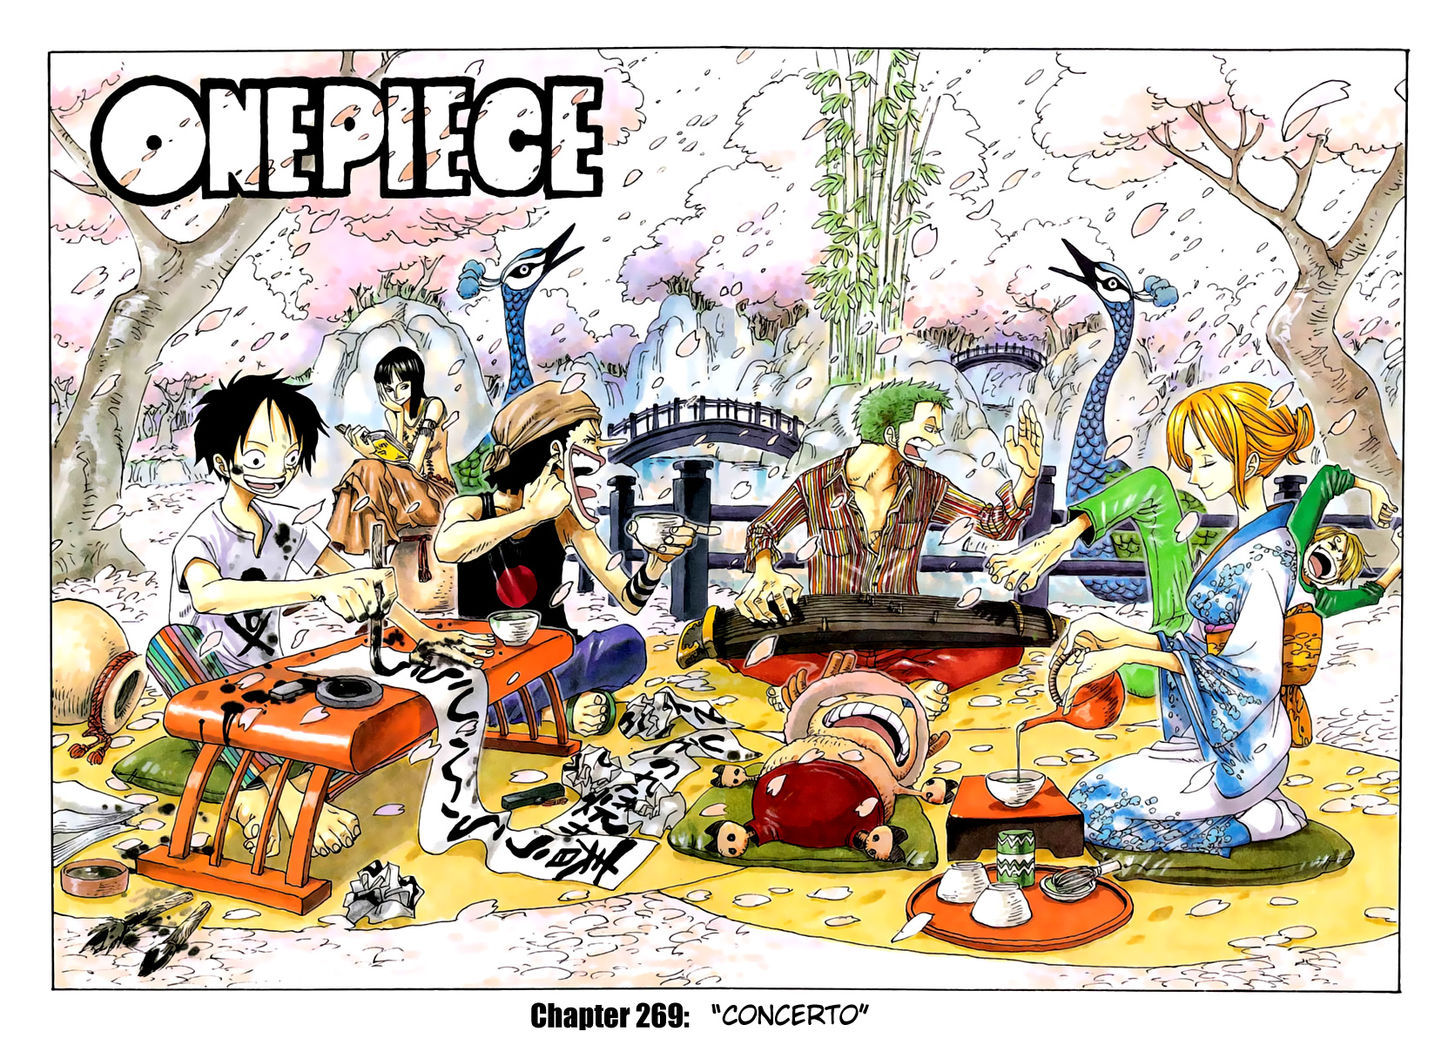 https://im.nineanime.com/comics/pic9/32/96/2617/OnePiece2690348.jpg Page 1